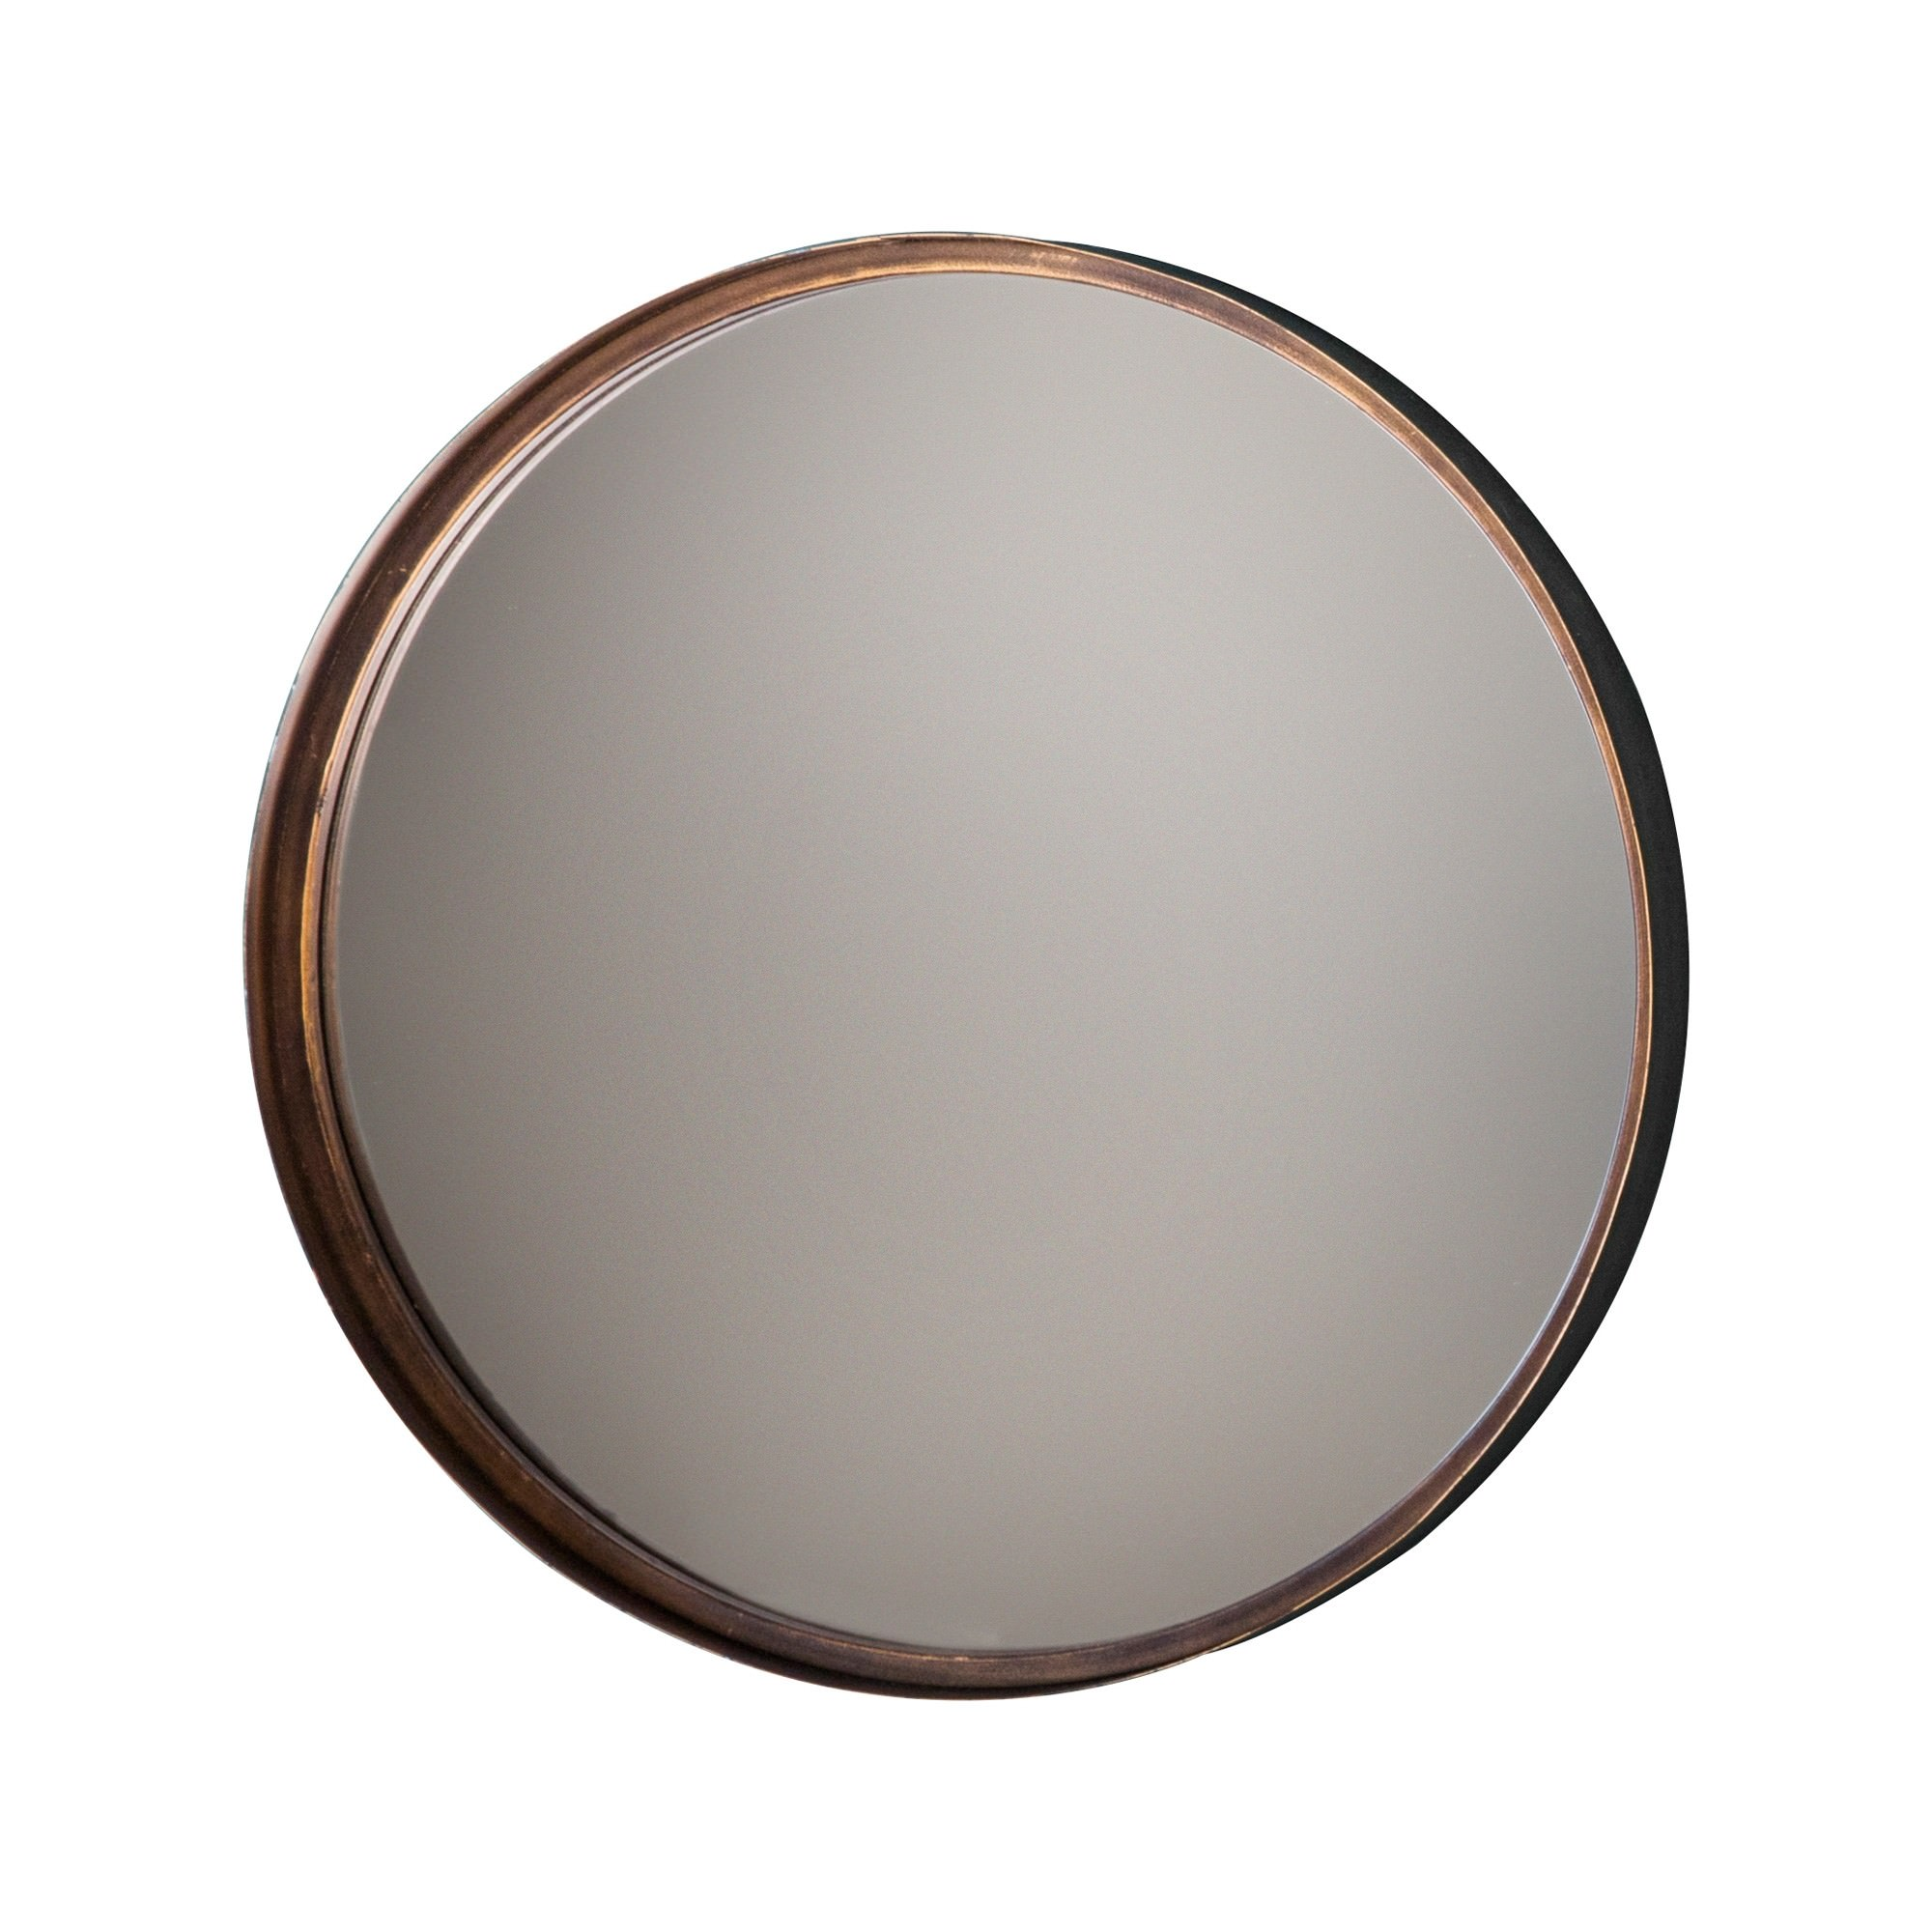 Metal Frame Round Wall Mirror, 30.5cm